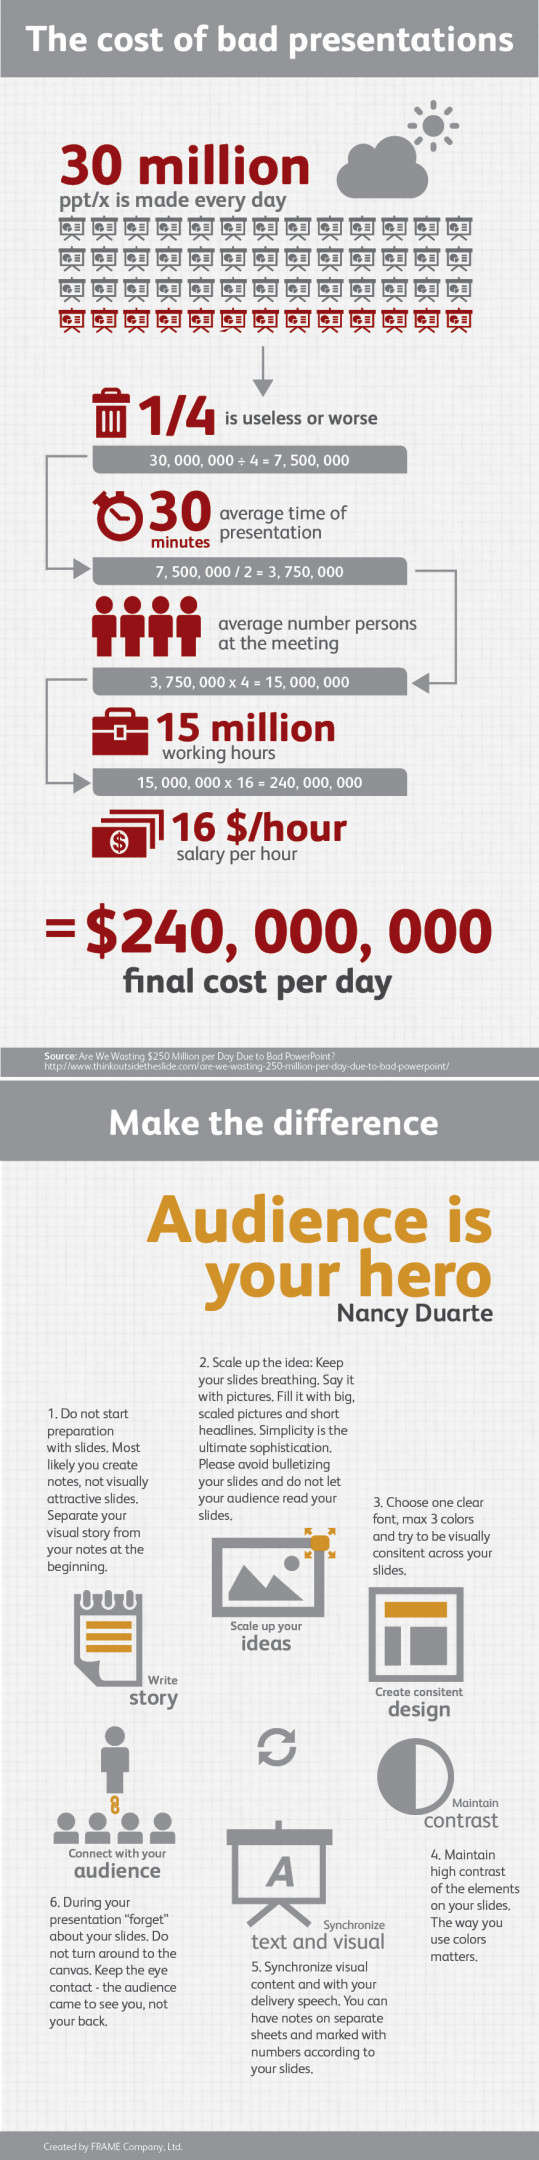 The cost of bad presentations and how to make the difference